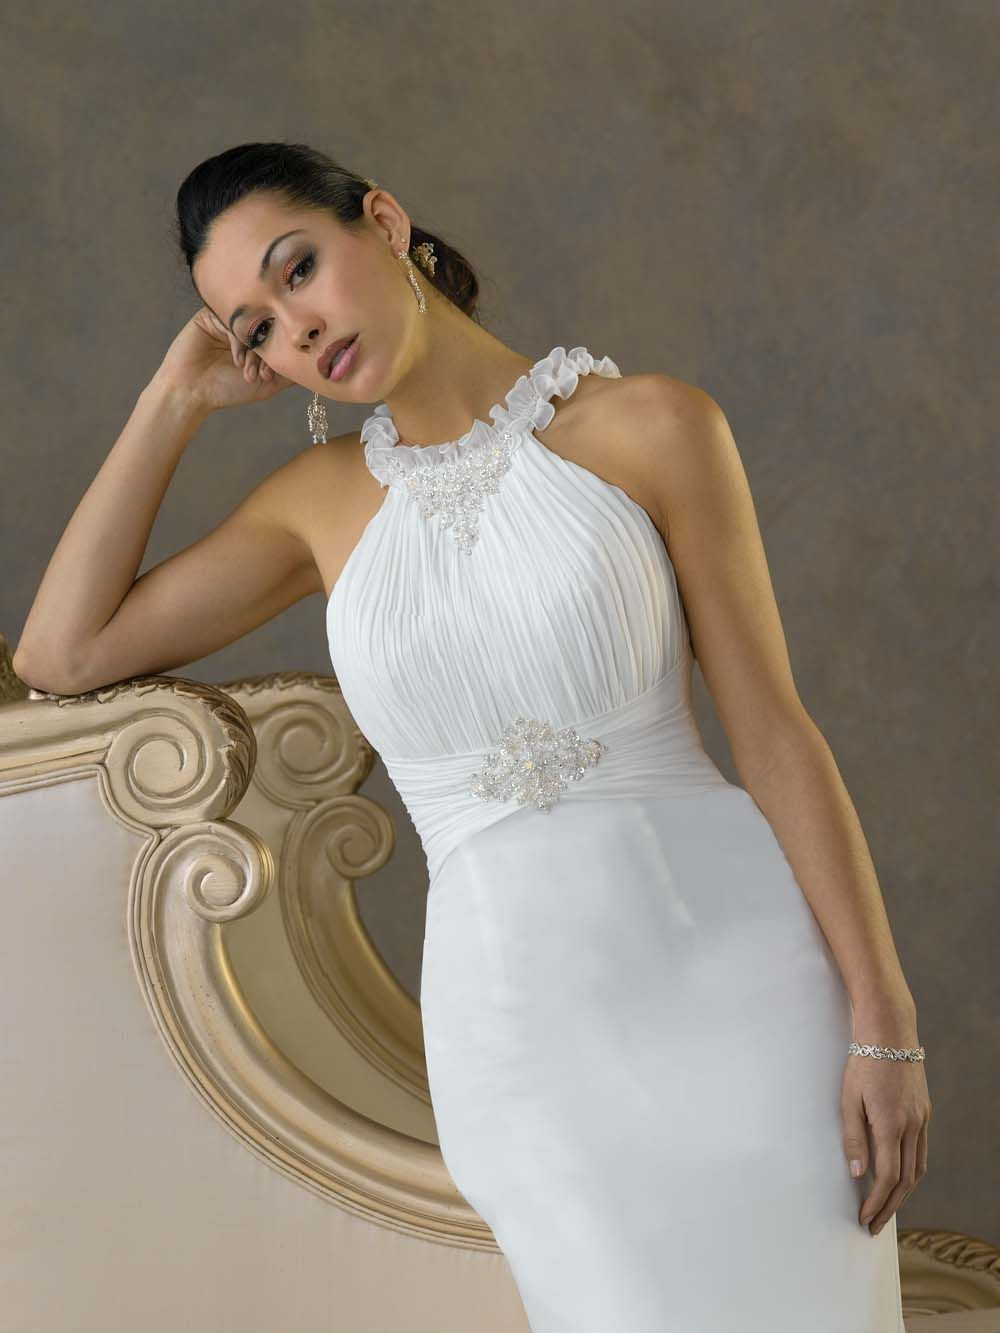 wedding dresses for second marriages | Dress wedding » Simple ...